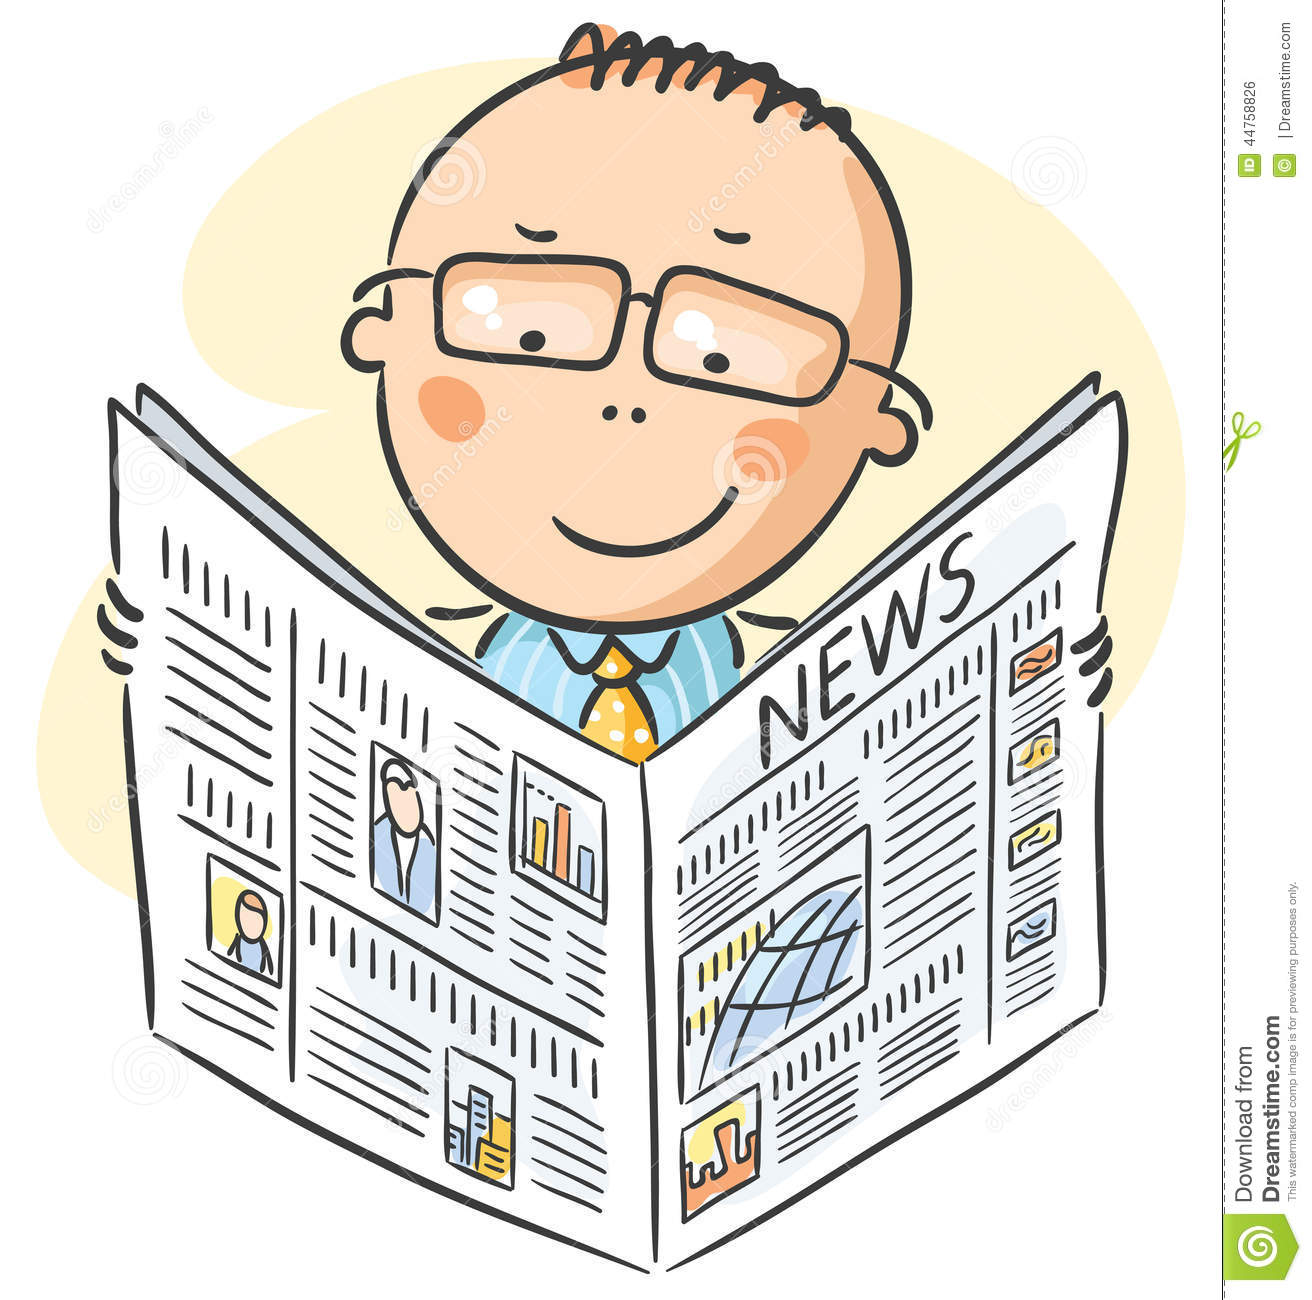 man-glasses-reading-newspaper-cartoon-44758826